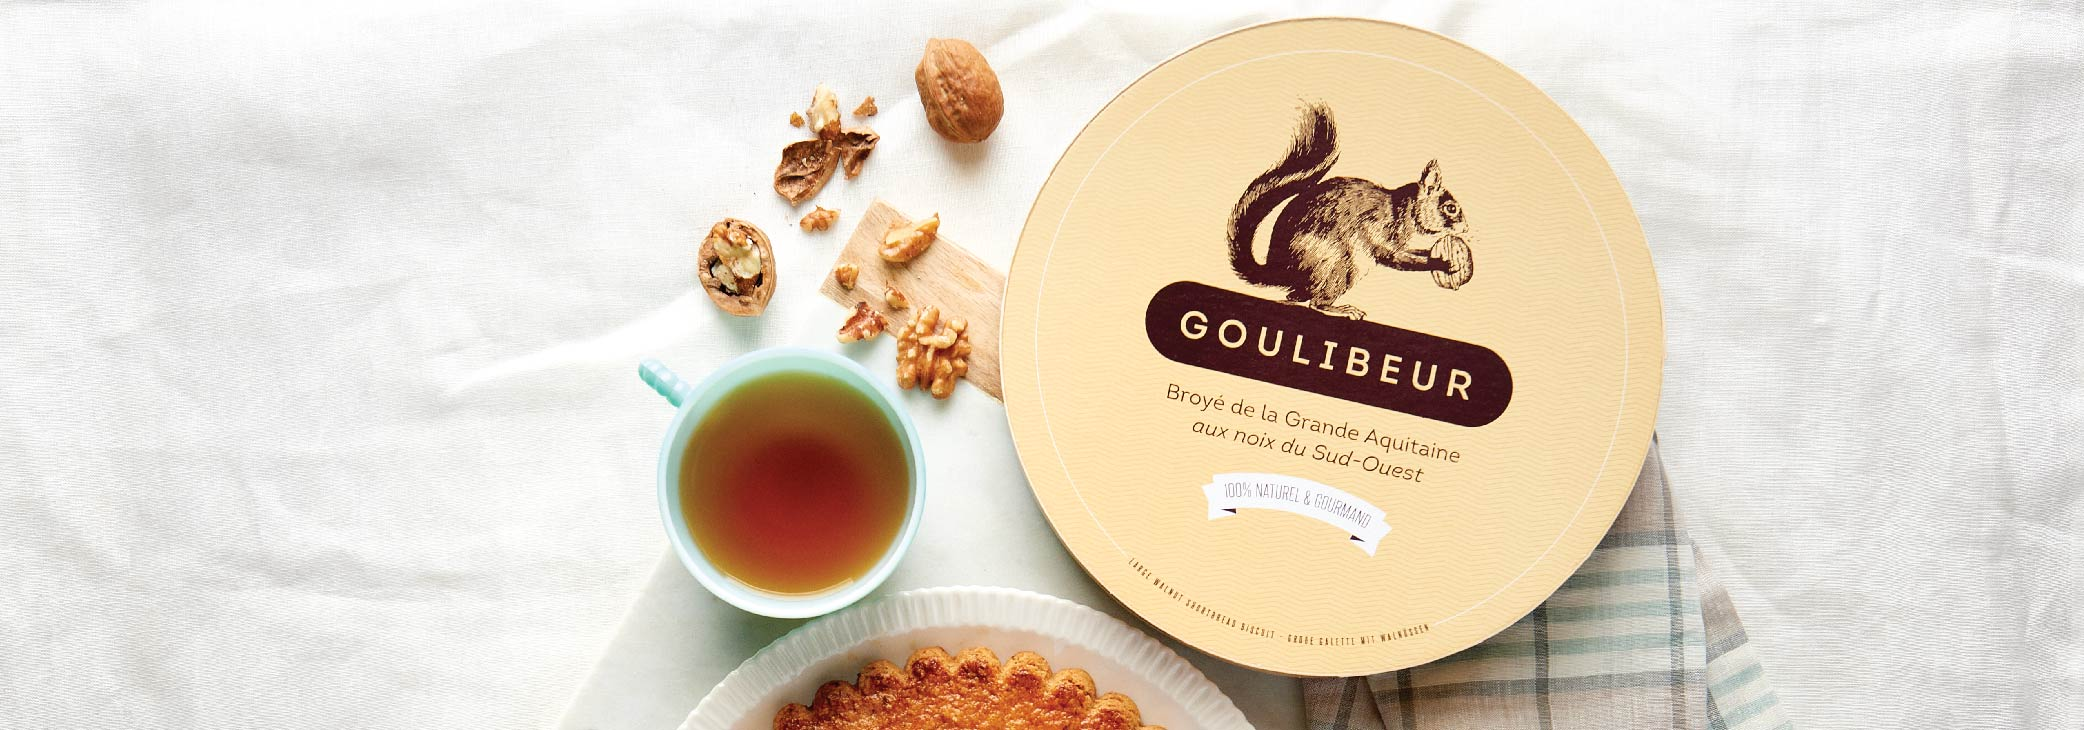 Goulibeur shortbread pure butter cookies from France